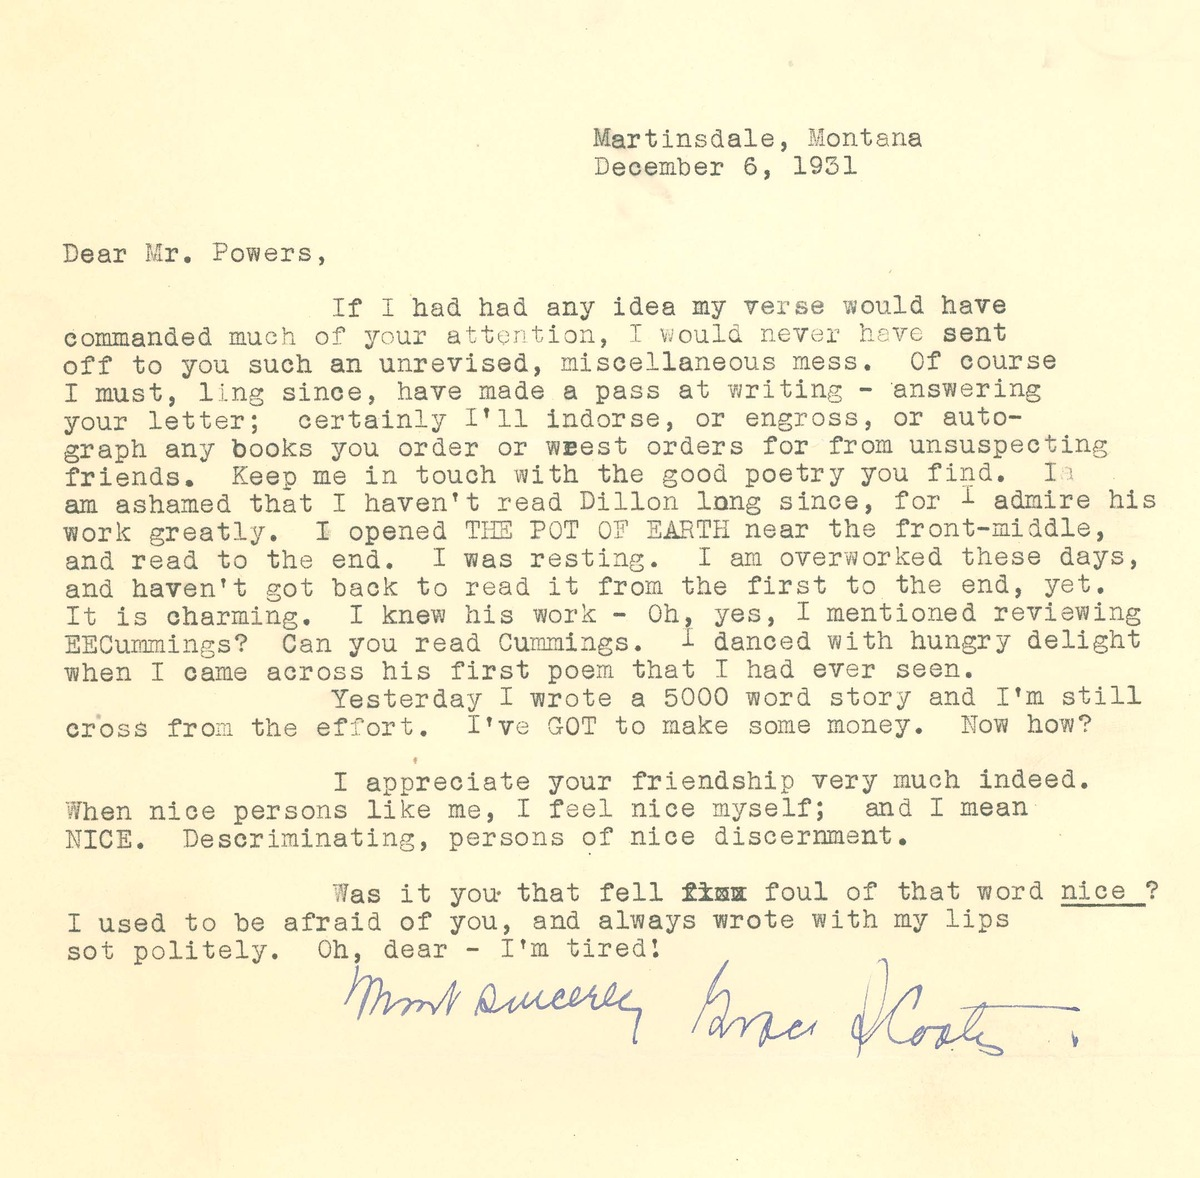 Letter to J.A. Powers from Grace Stone Coates